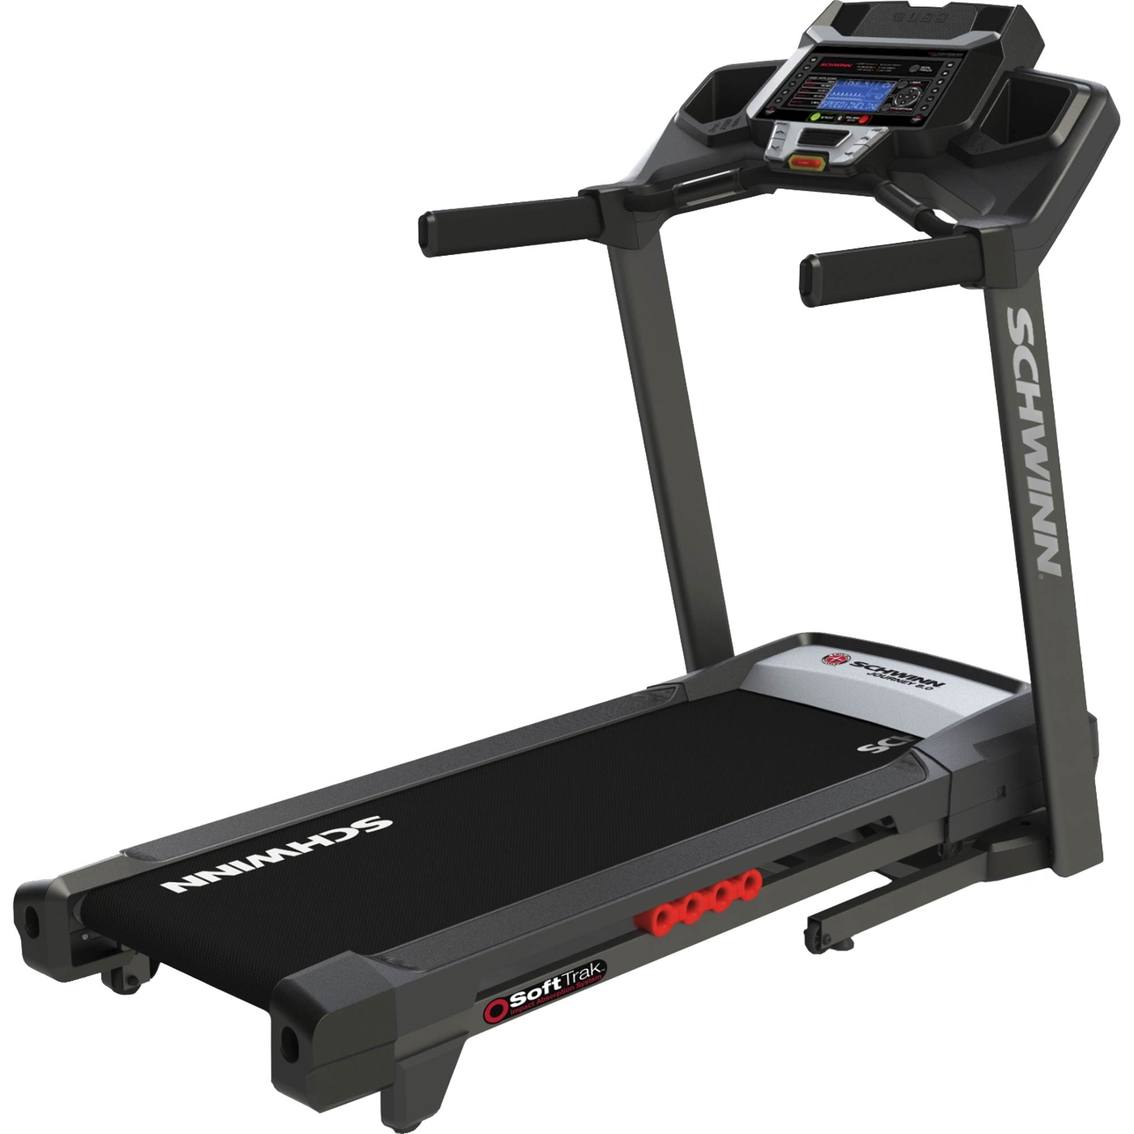 schwinn journey 8.0 treadmill manual